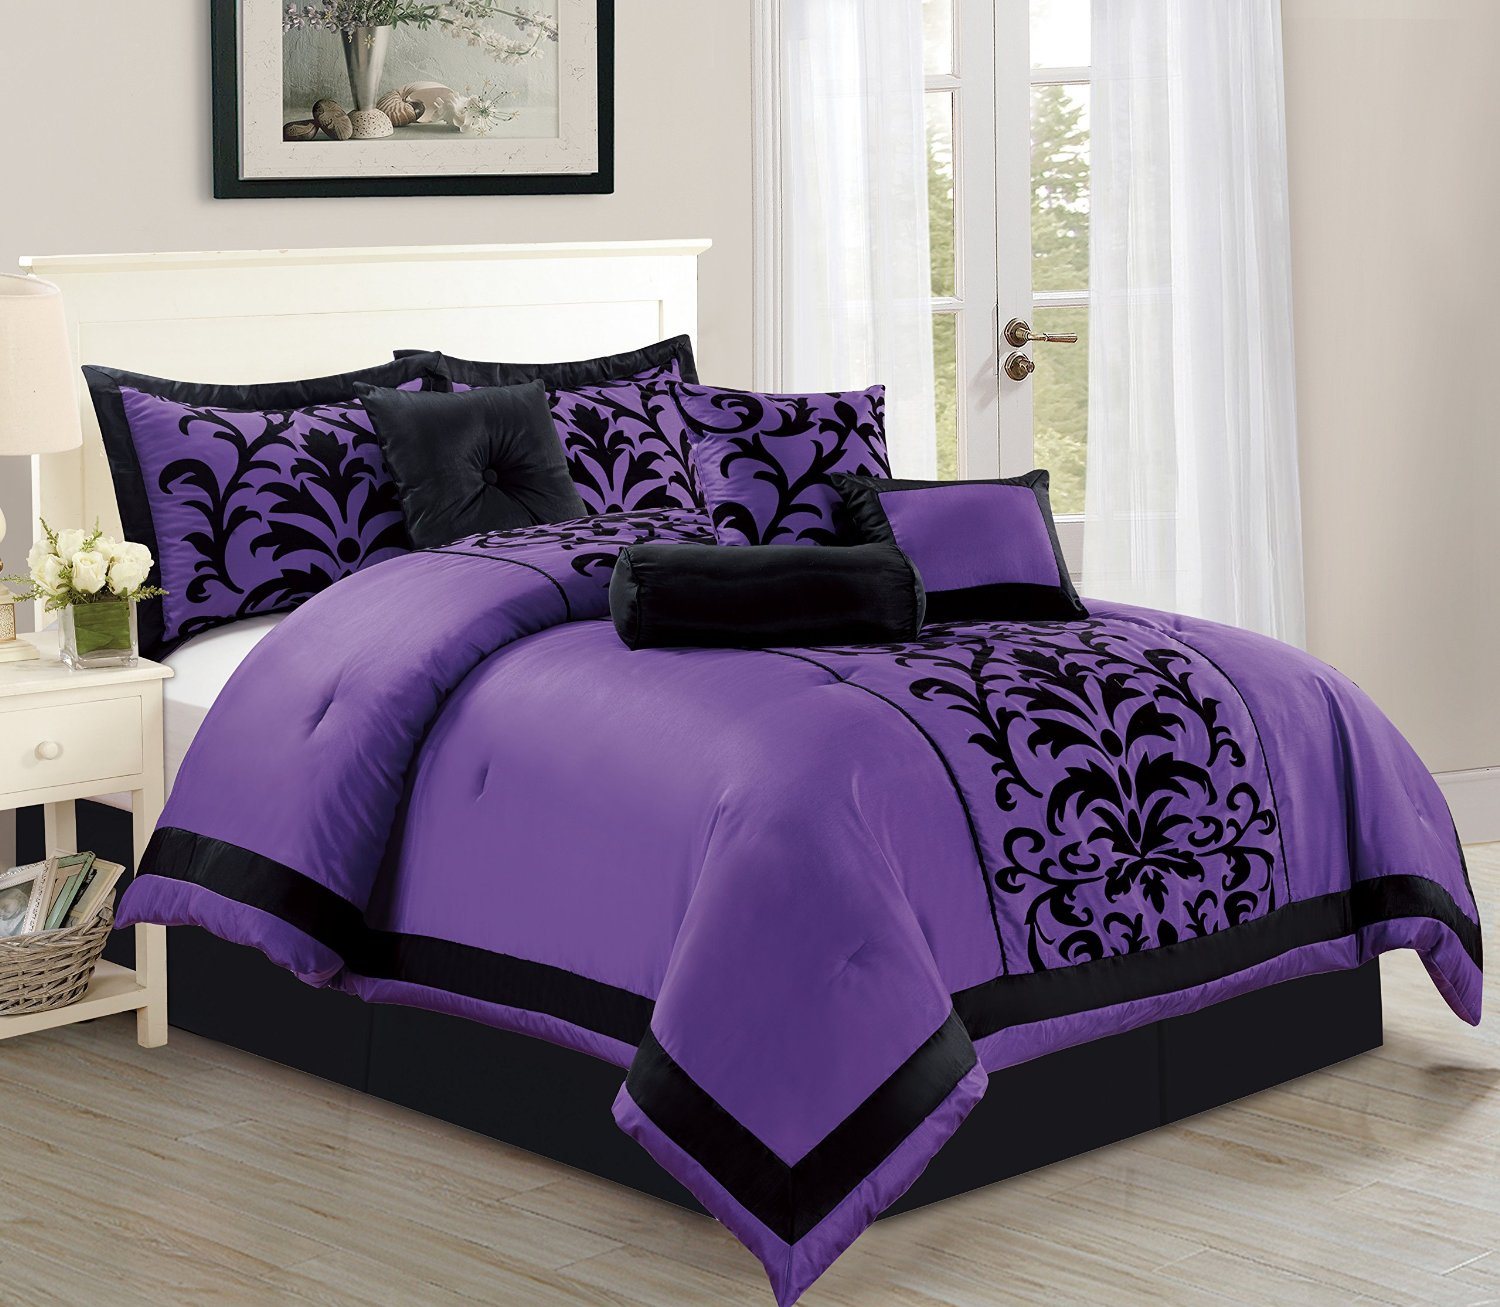 empire home dawn 8 piece comforter set over sized bed in a bag full size purple